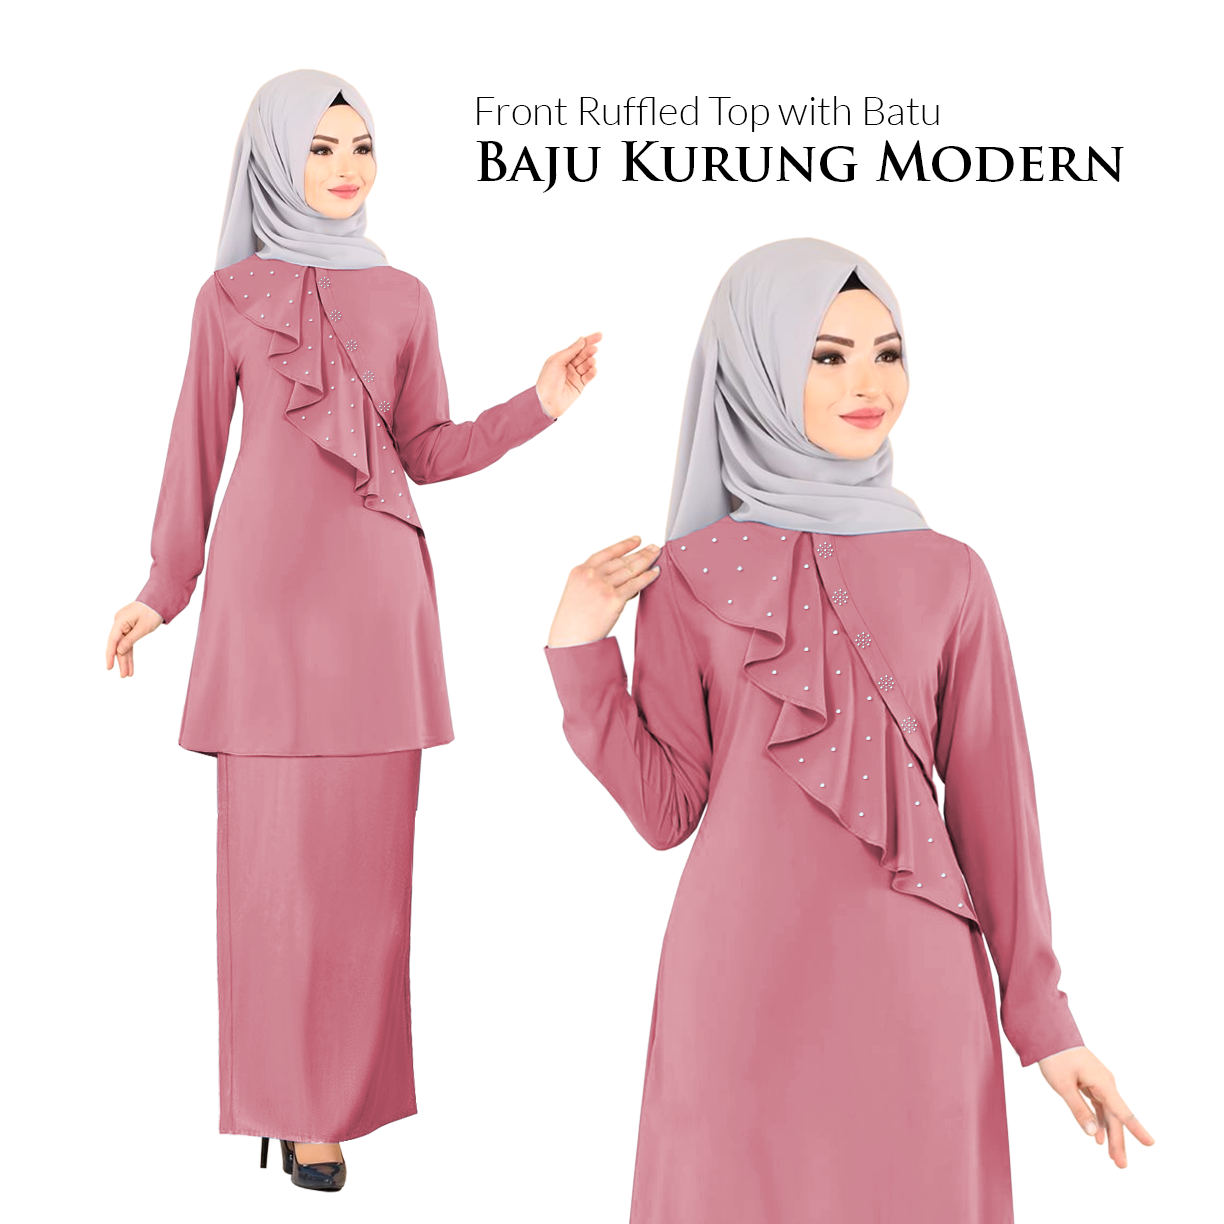 Harga KM Fashion Front Ruffled Top with Batu Baju Kurung Modern (Hot Item) (New Arrival) 2020